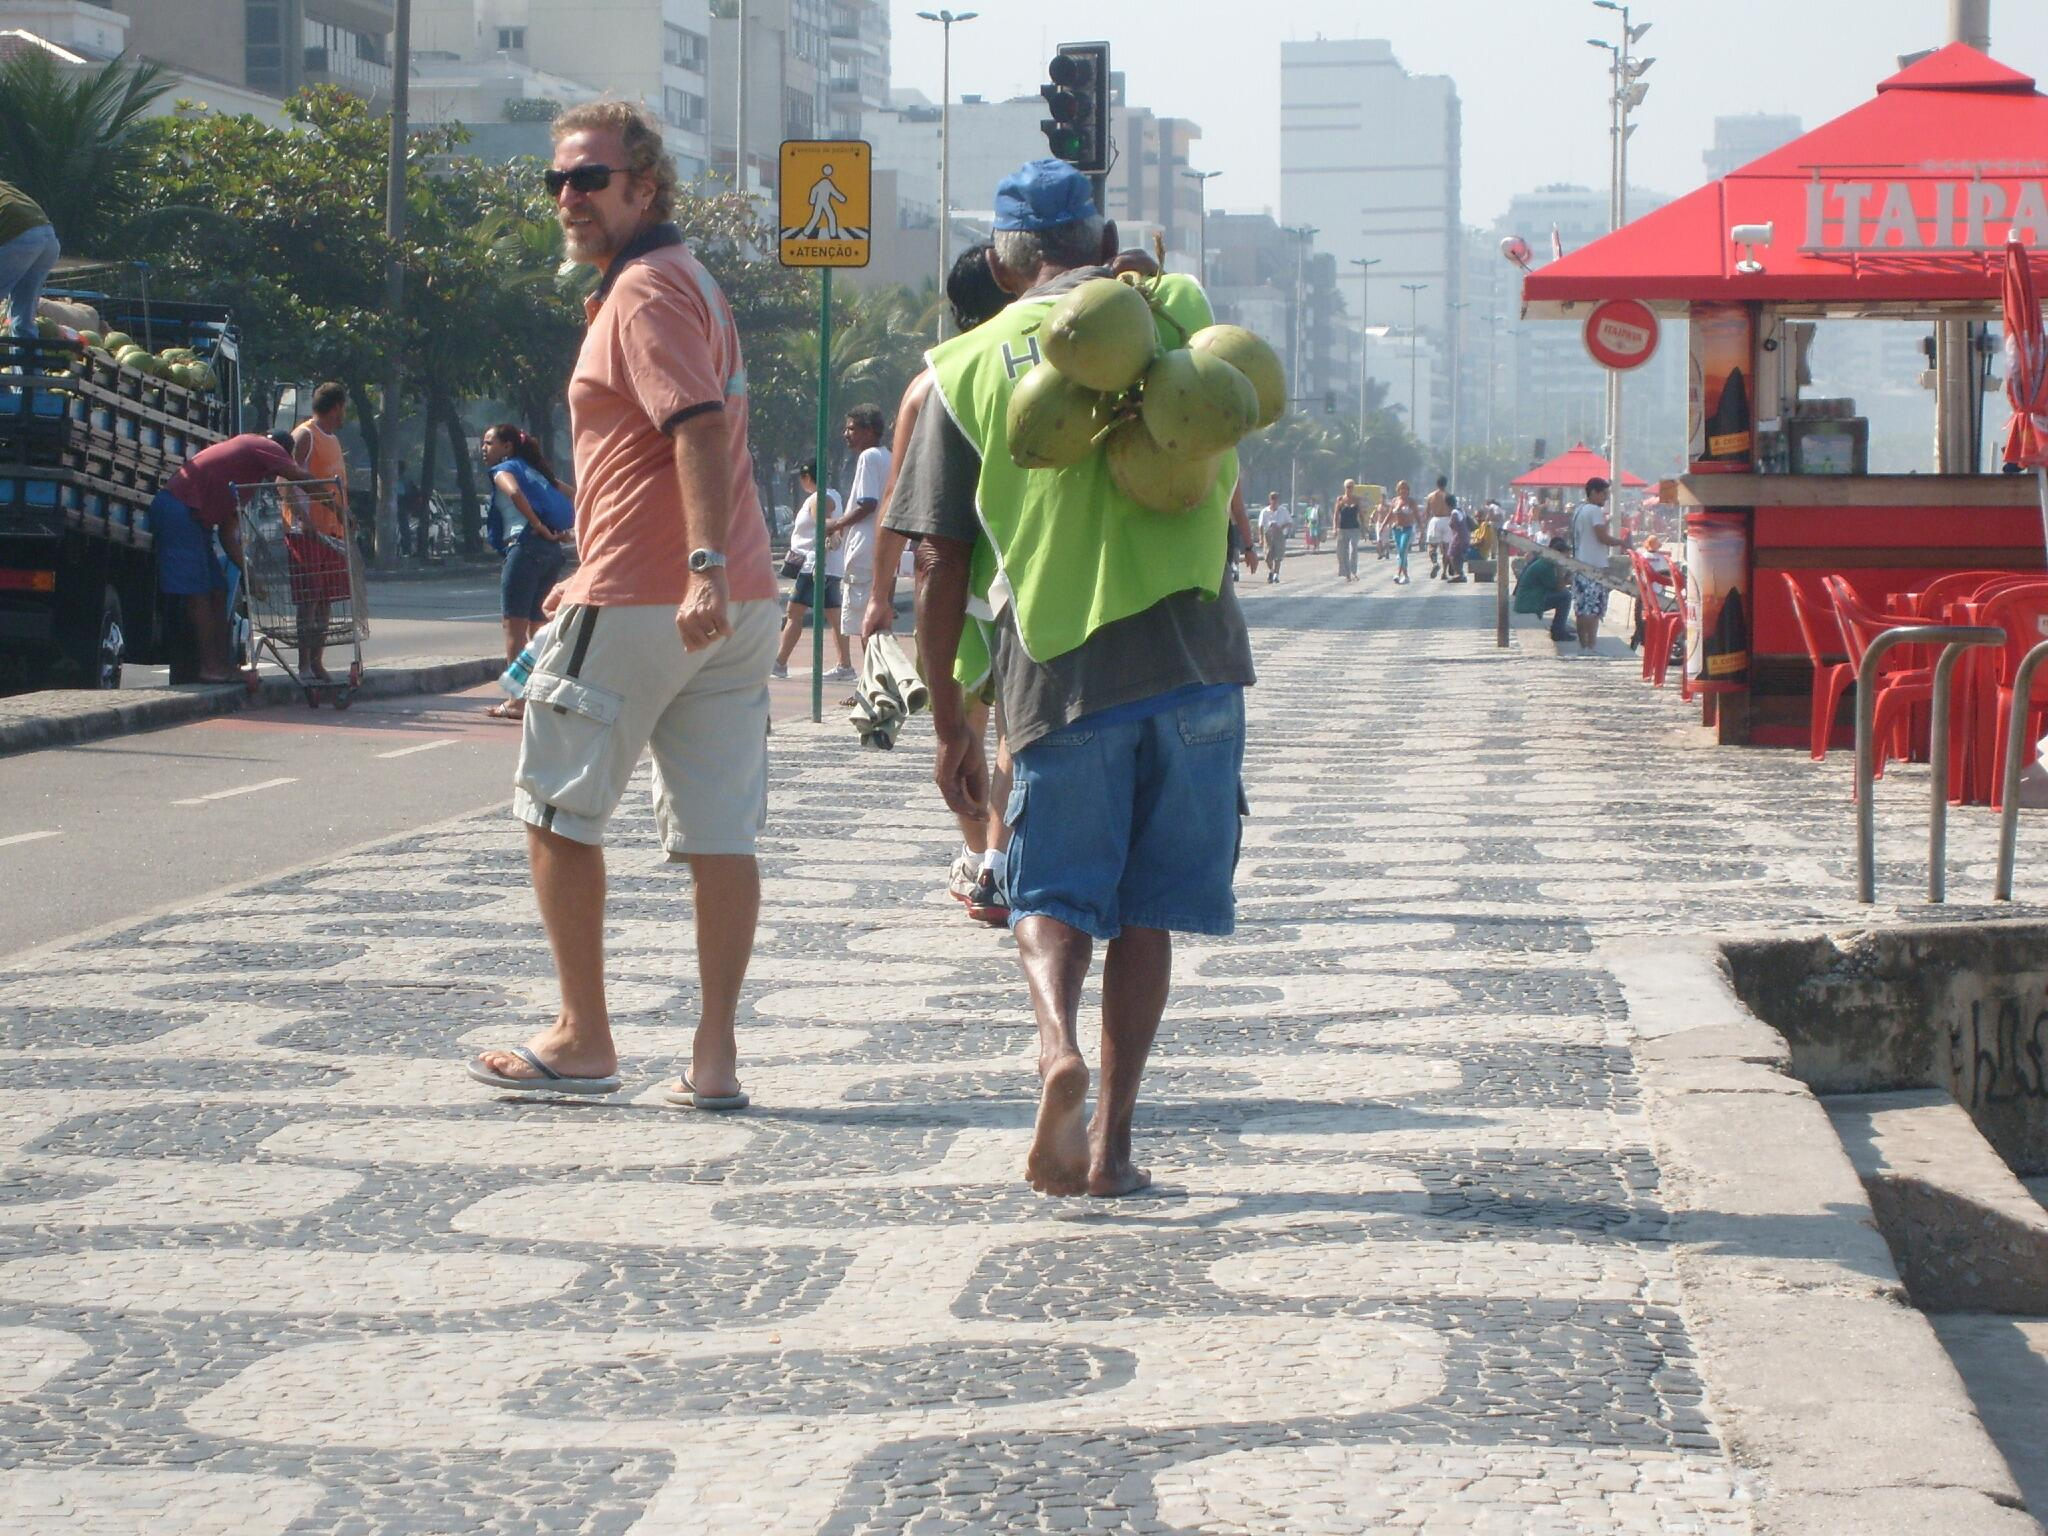 RT @EatSoccerTV: #WorldCup2014 Rio: Scan QR codes on sidewalks for detailed maps w/ points of interest. Info in 3 languages! #travel http://t.co/OHgkfB5SAz